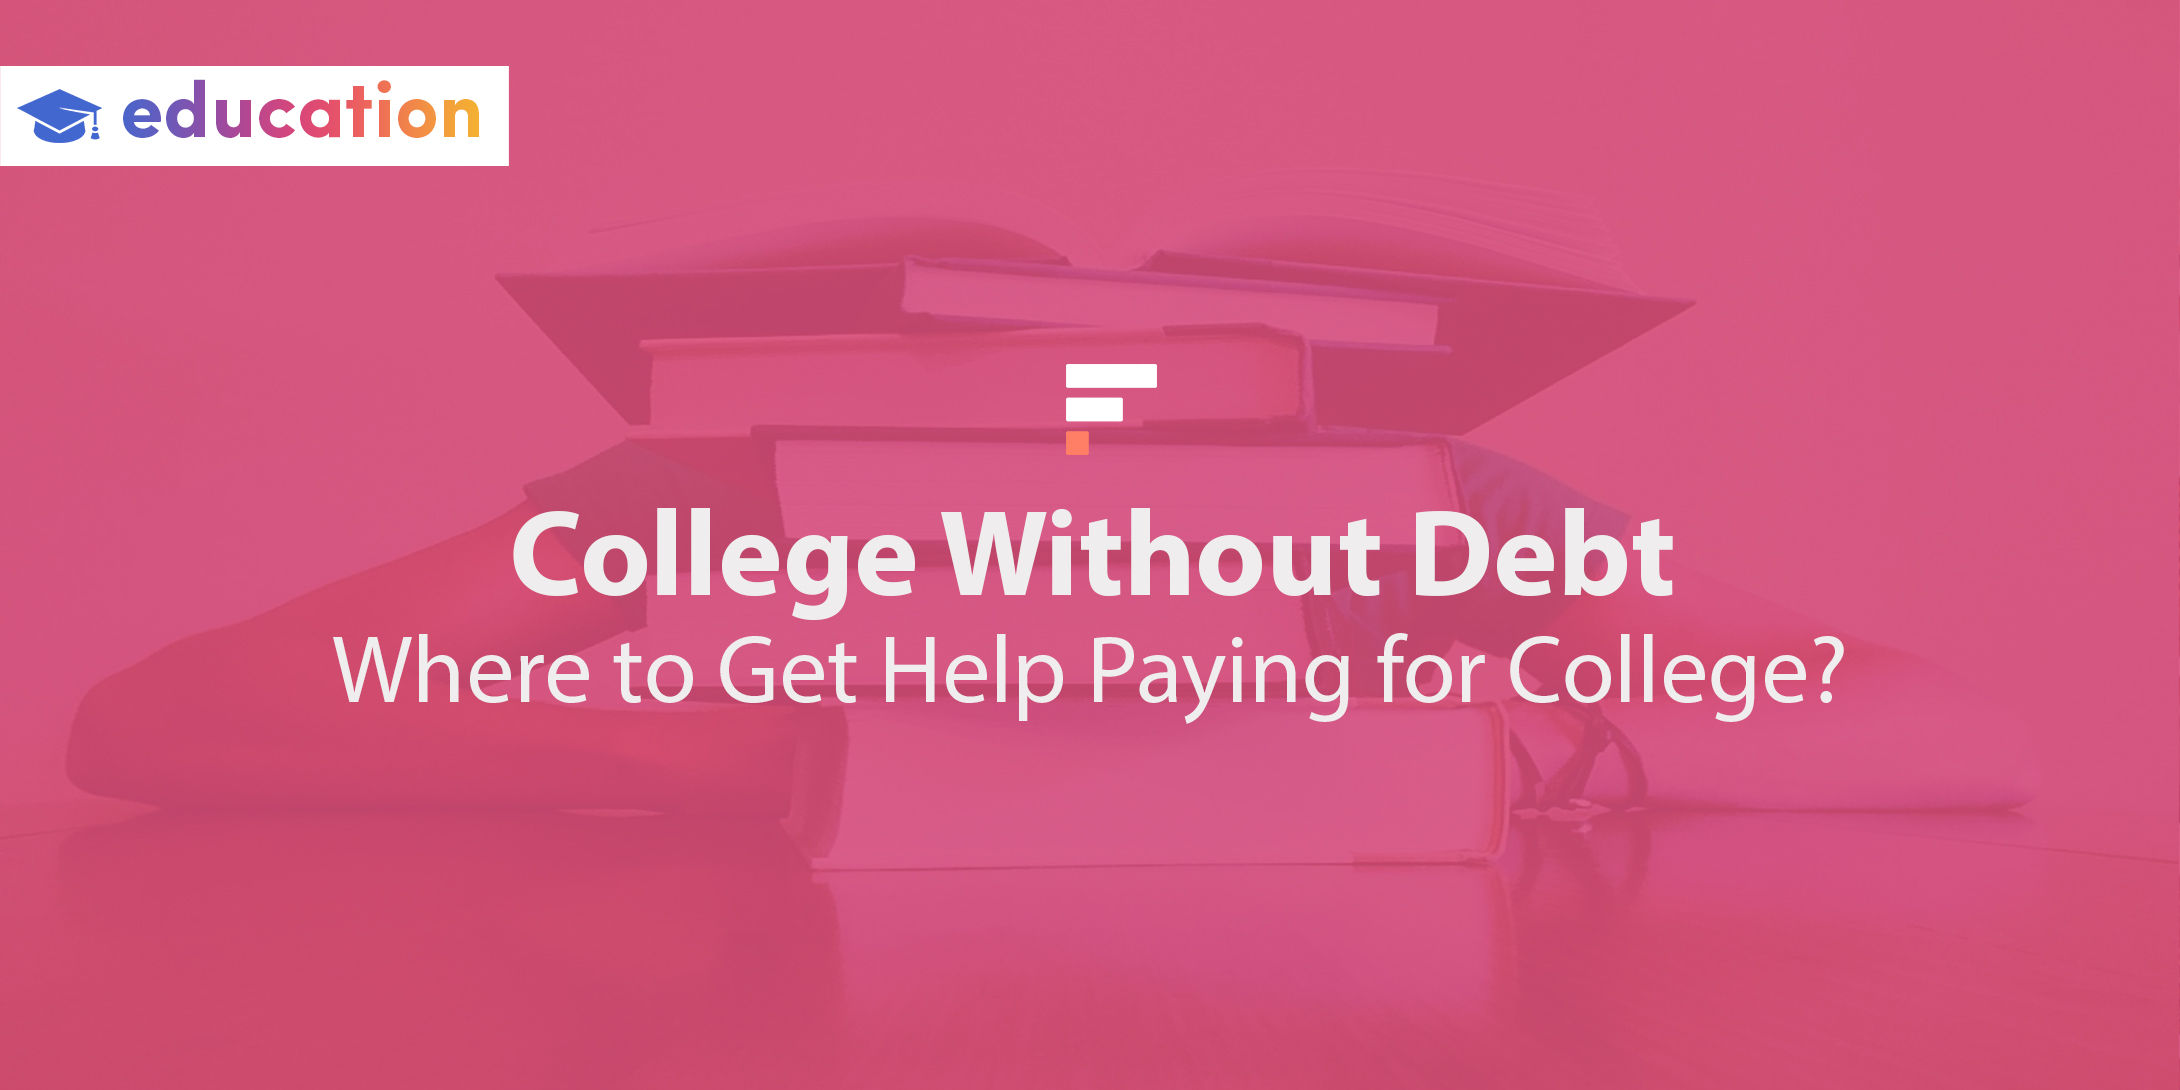 College Without Debt: Where to Get Help Paying for College